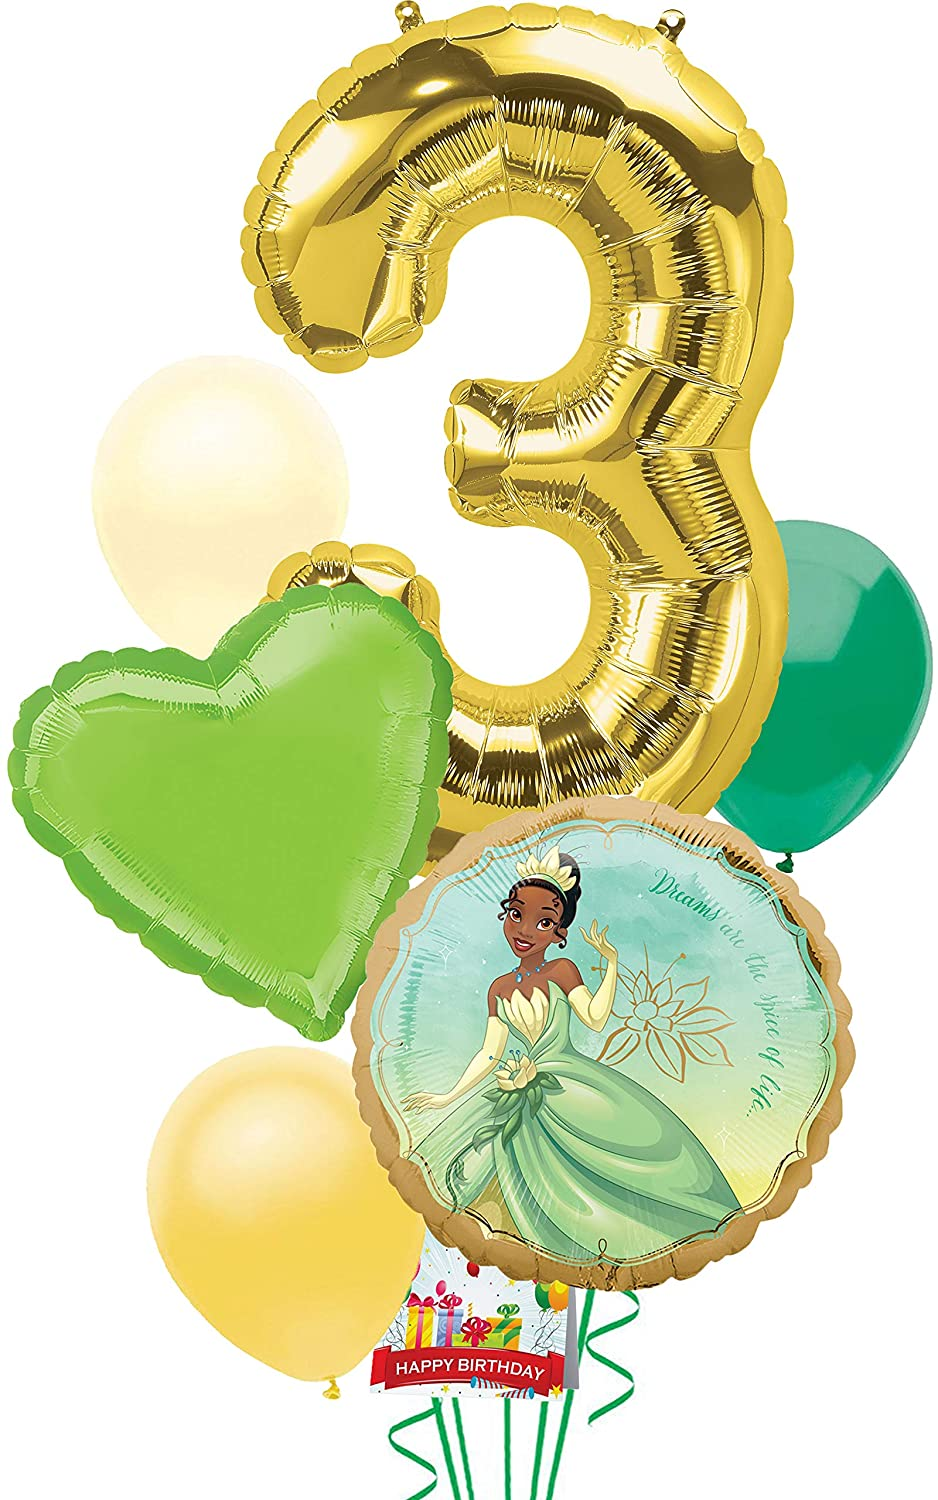 Princess and the Frog Tiana Party Supplies Balloon Decoration Bouquet Bundle for 3rd Birthday